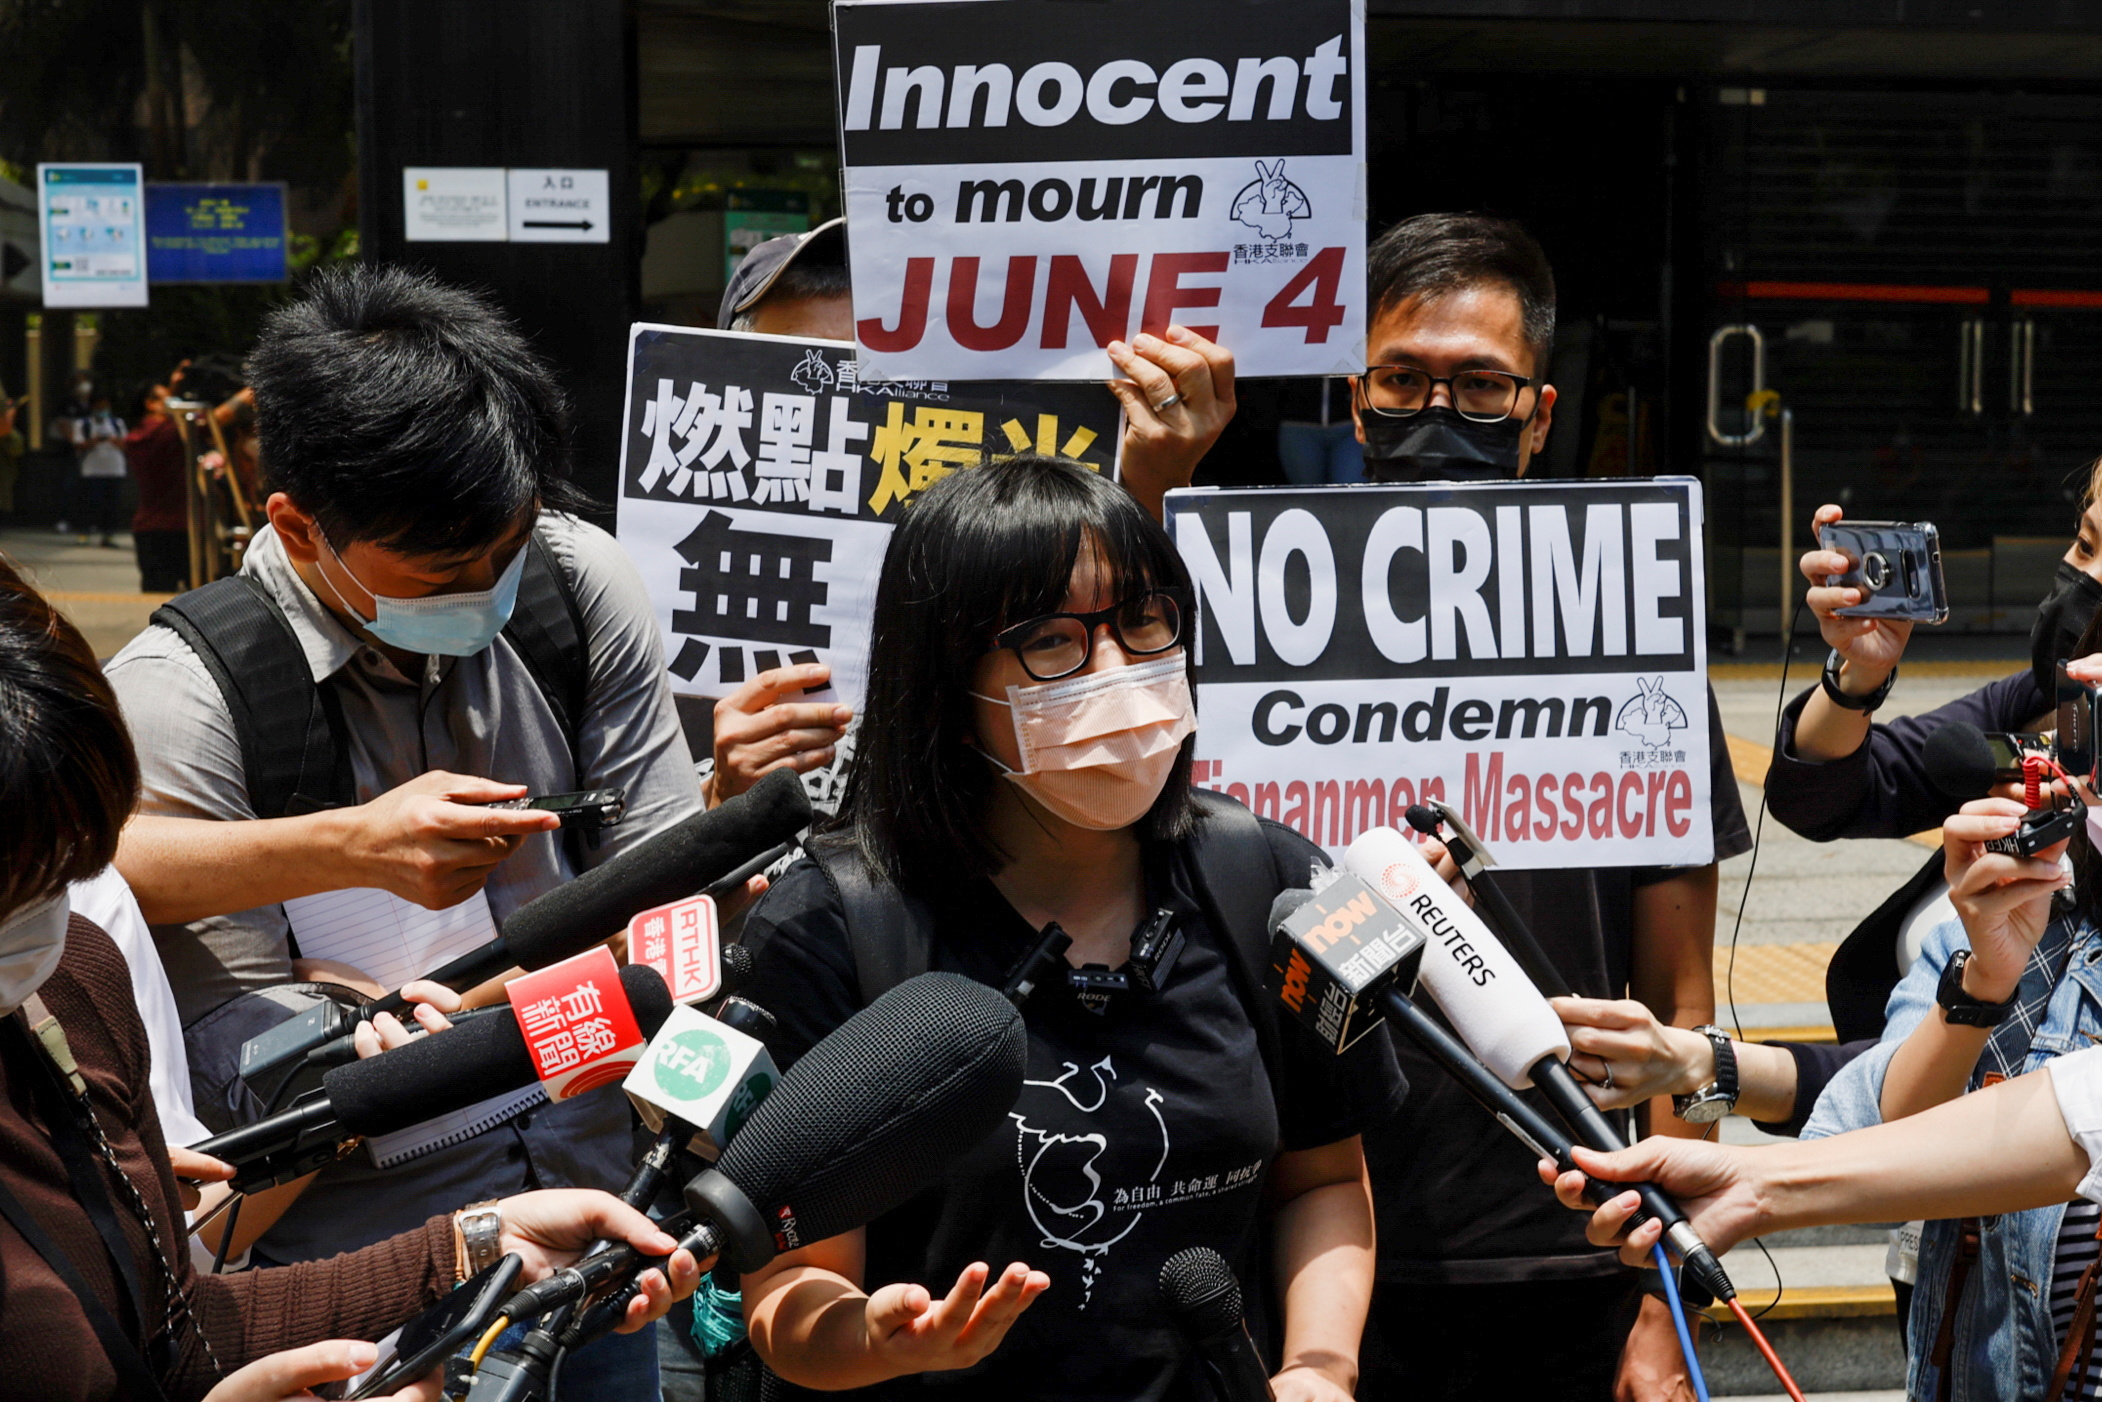 Vice-chairwoman of Hong Kong Alliance in Support of Patriotic Democratic Movements of China, Chow Hang-tung speaks to media after activist Joshua Wong was jailed for participating on June 4 assembly to commemorate the 1989 crackdown on protesters in and around Beijing's Tiananmen Square, outside the court in Hong Kong, China May 6, 2021. REUTERS/Tyrone Siu